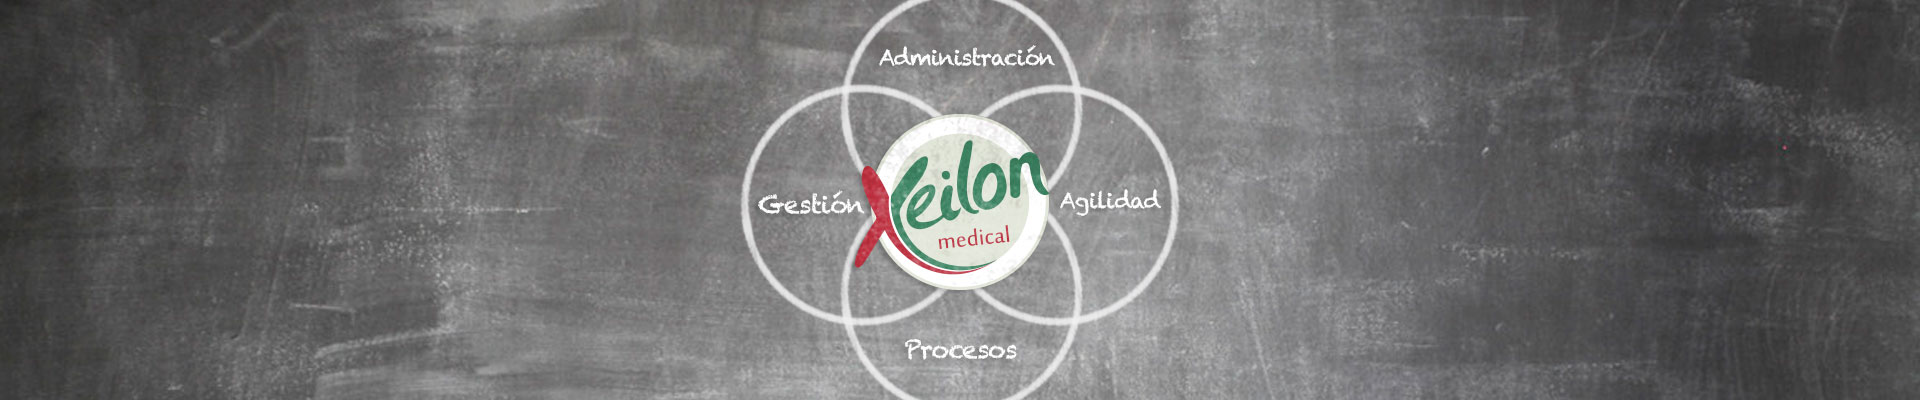 Xeilon  Medical by Galbop